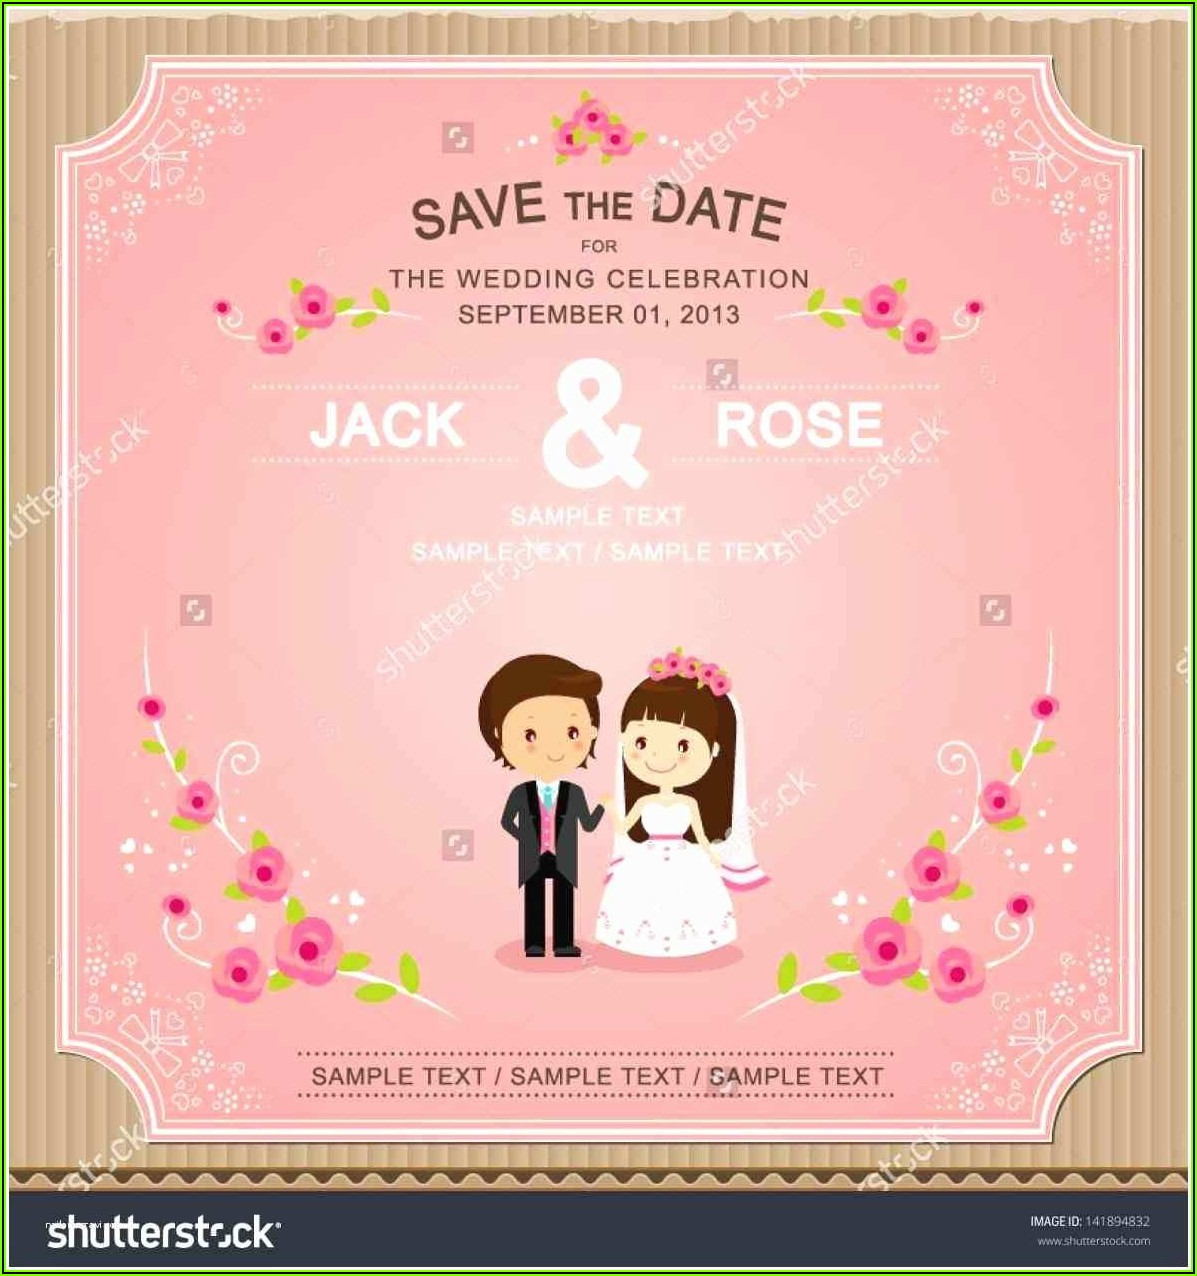 Online Editable Wedding Invitation Templates Free Download